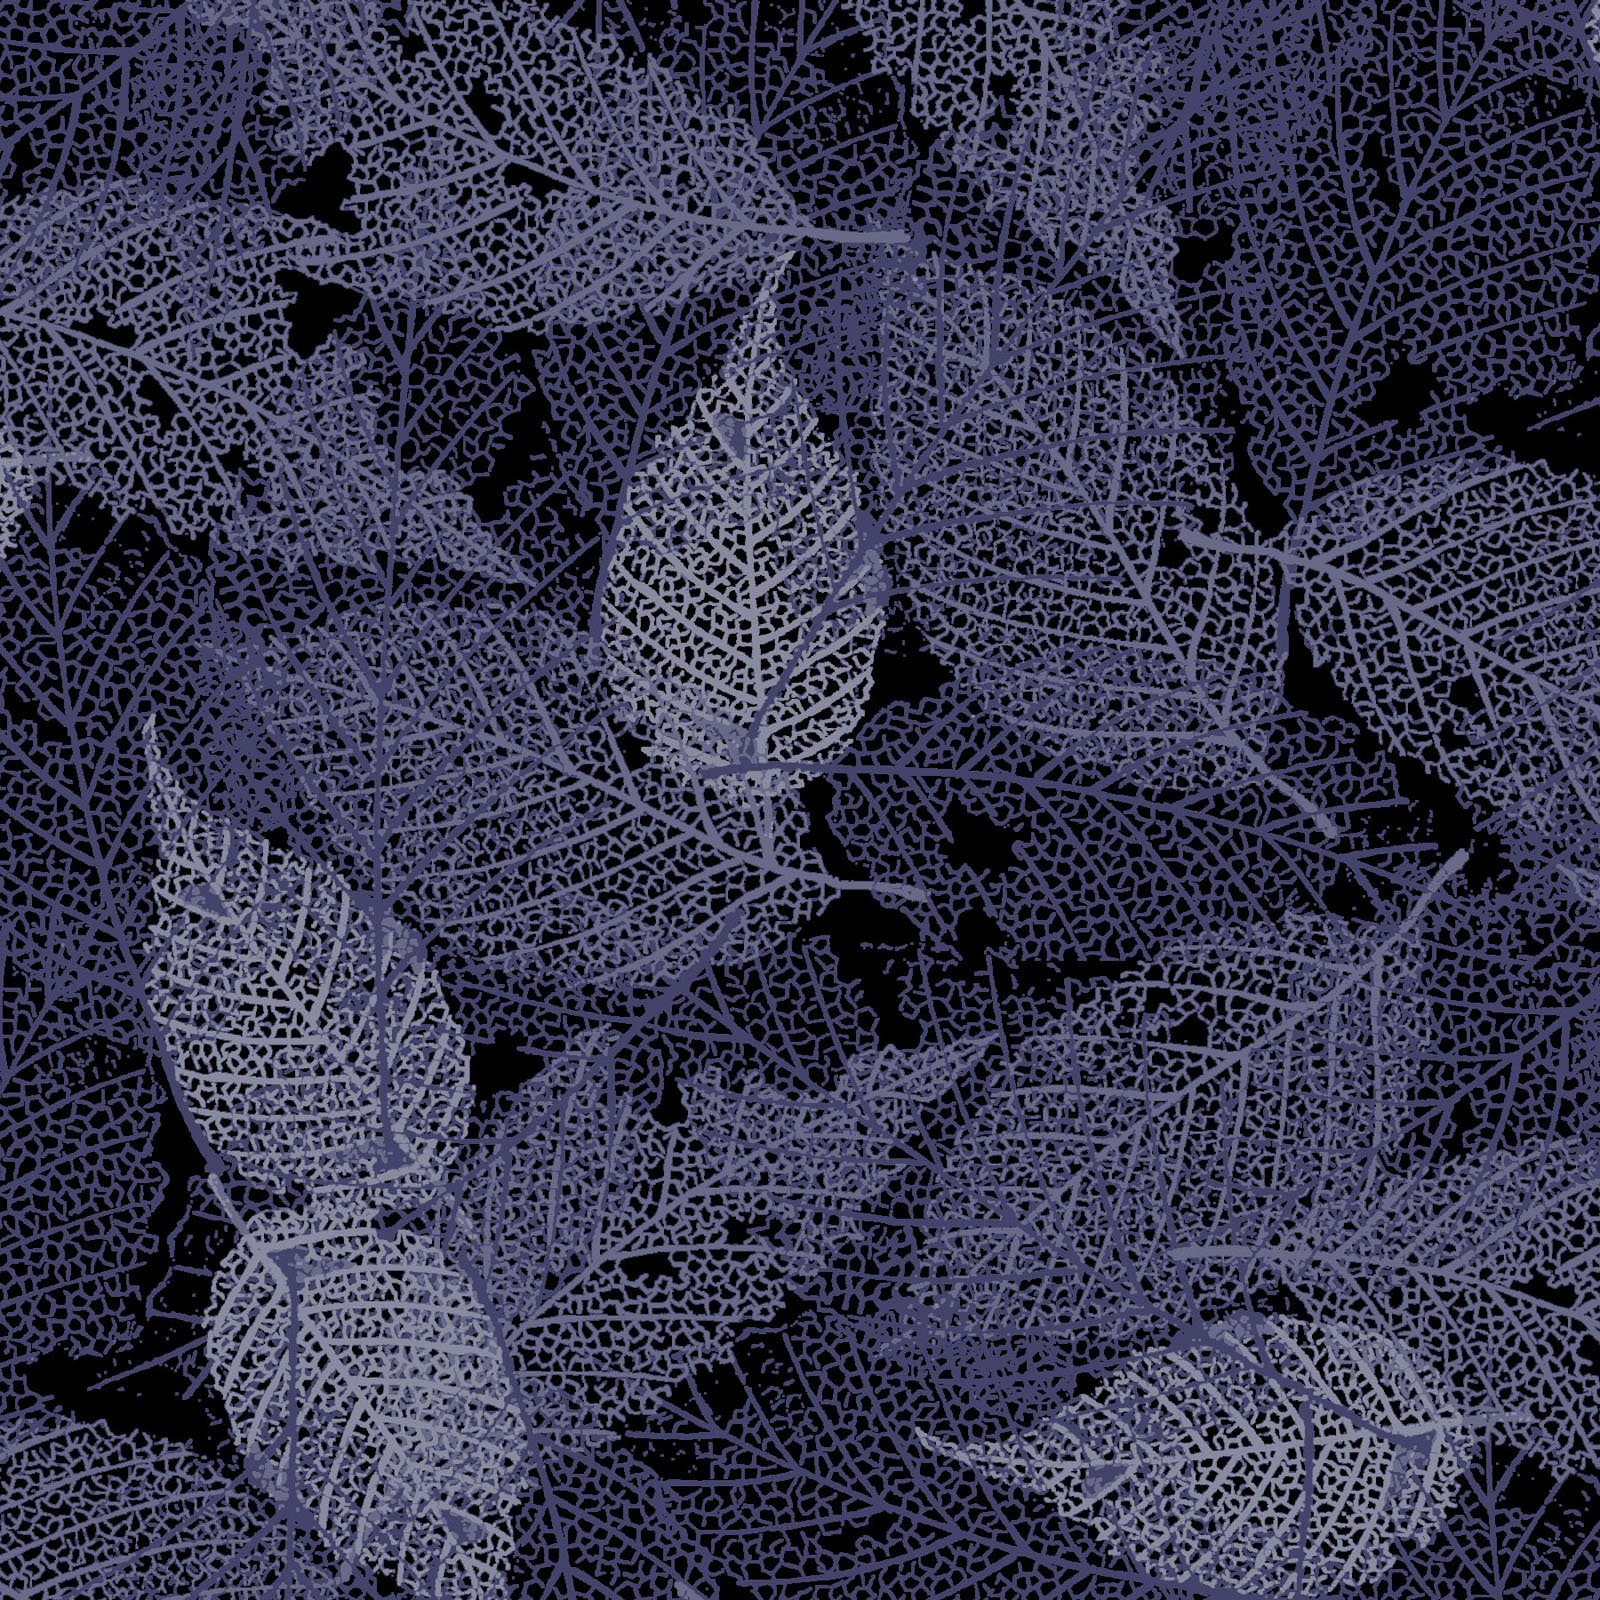 FOLI-4478 DS - FOLIAGE BY P&B BOUTIQUE TEXTURE LEAVES DK SILVER - ARRIVING IN MAY 2021